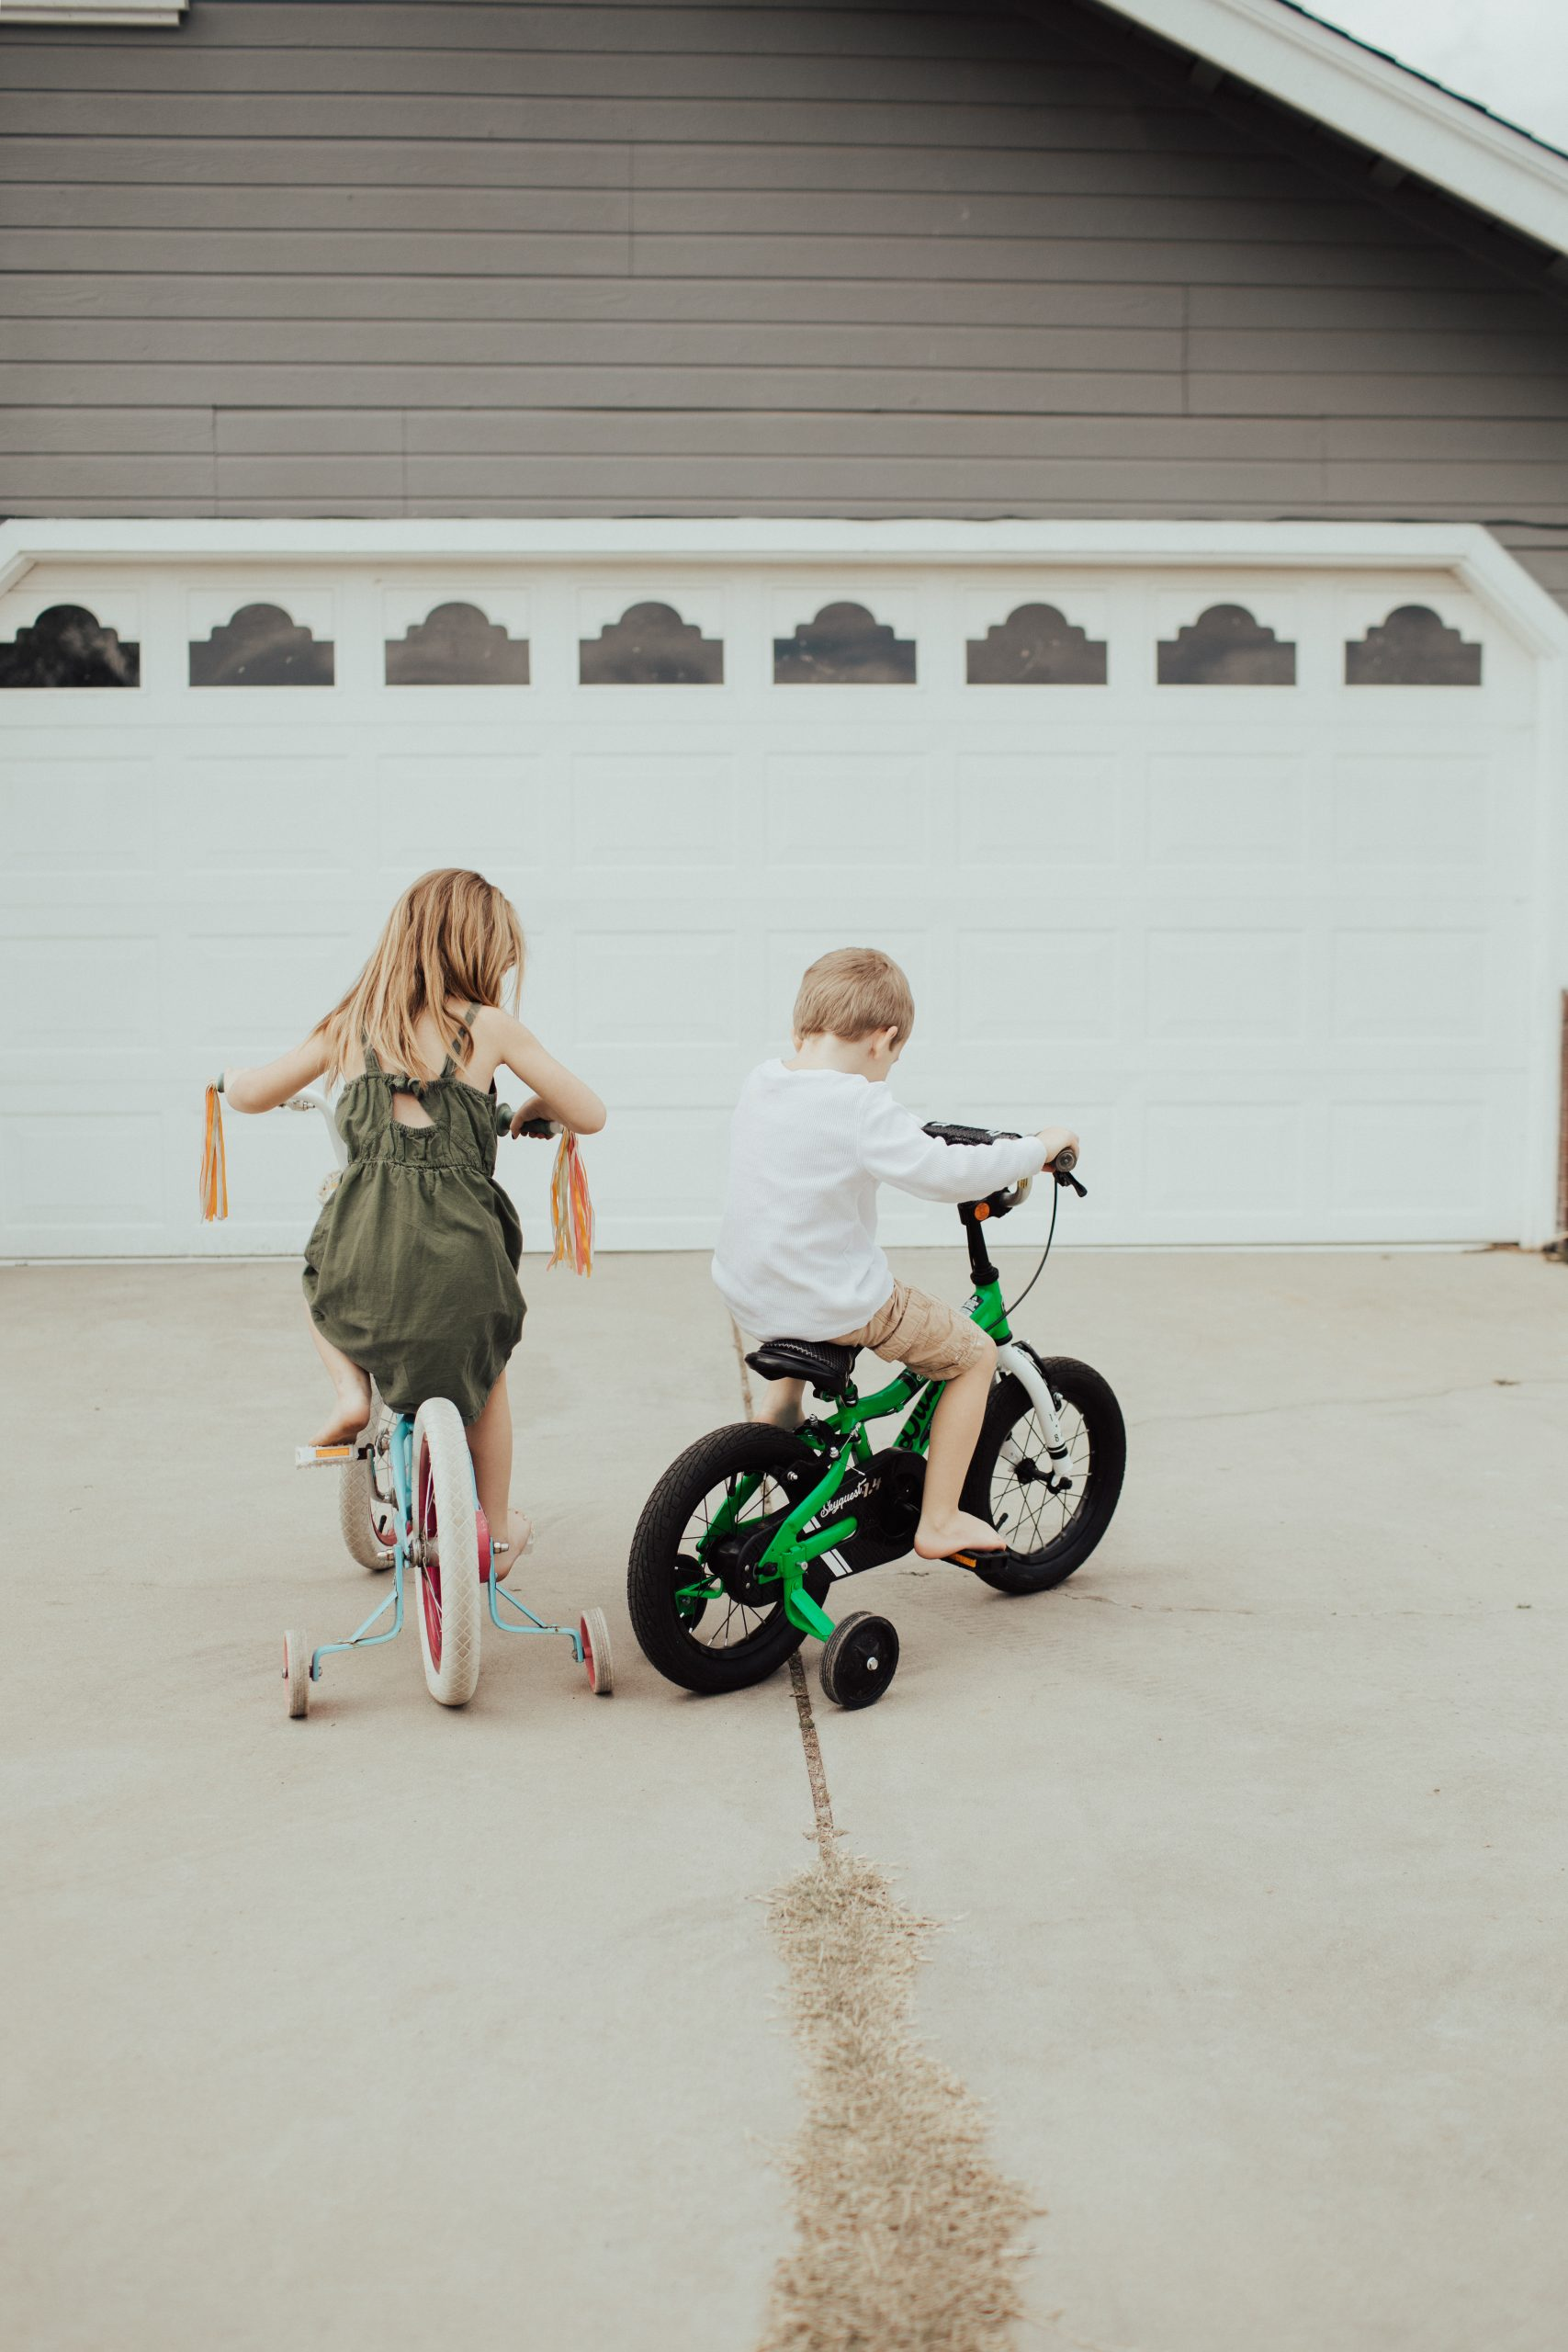 every kid needs play two kids riding bikes in the driveway